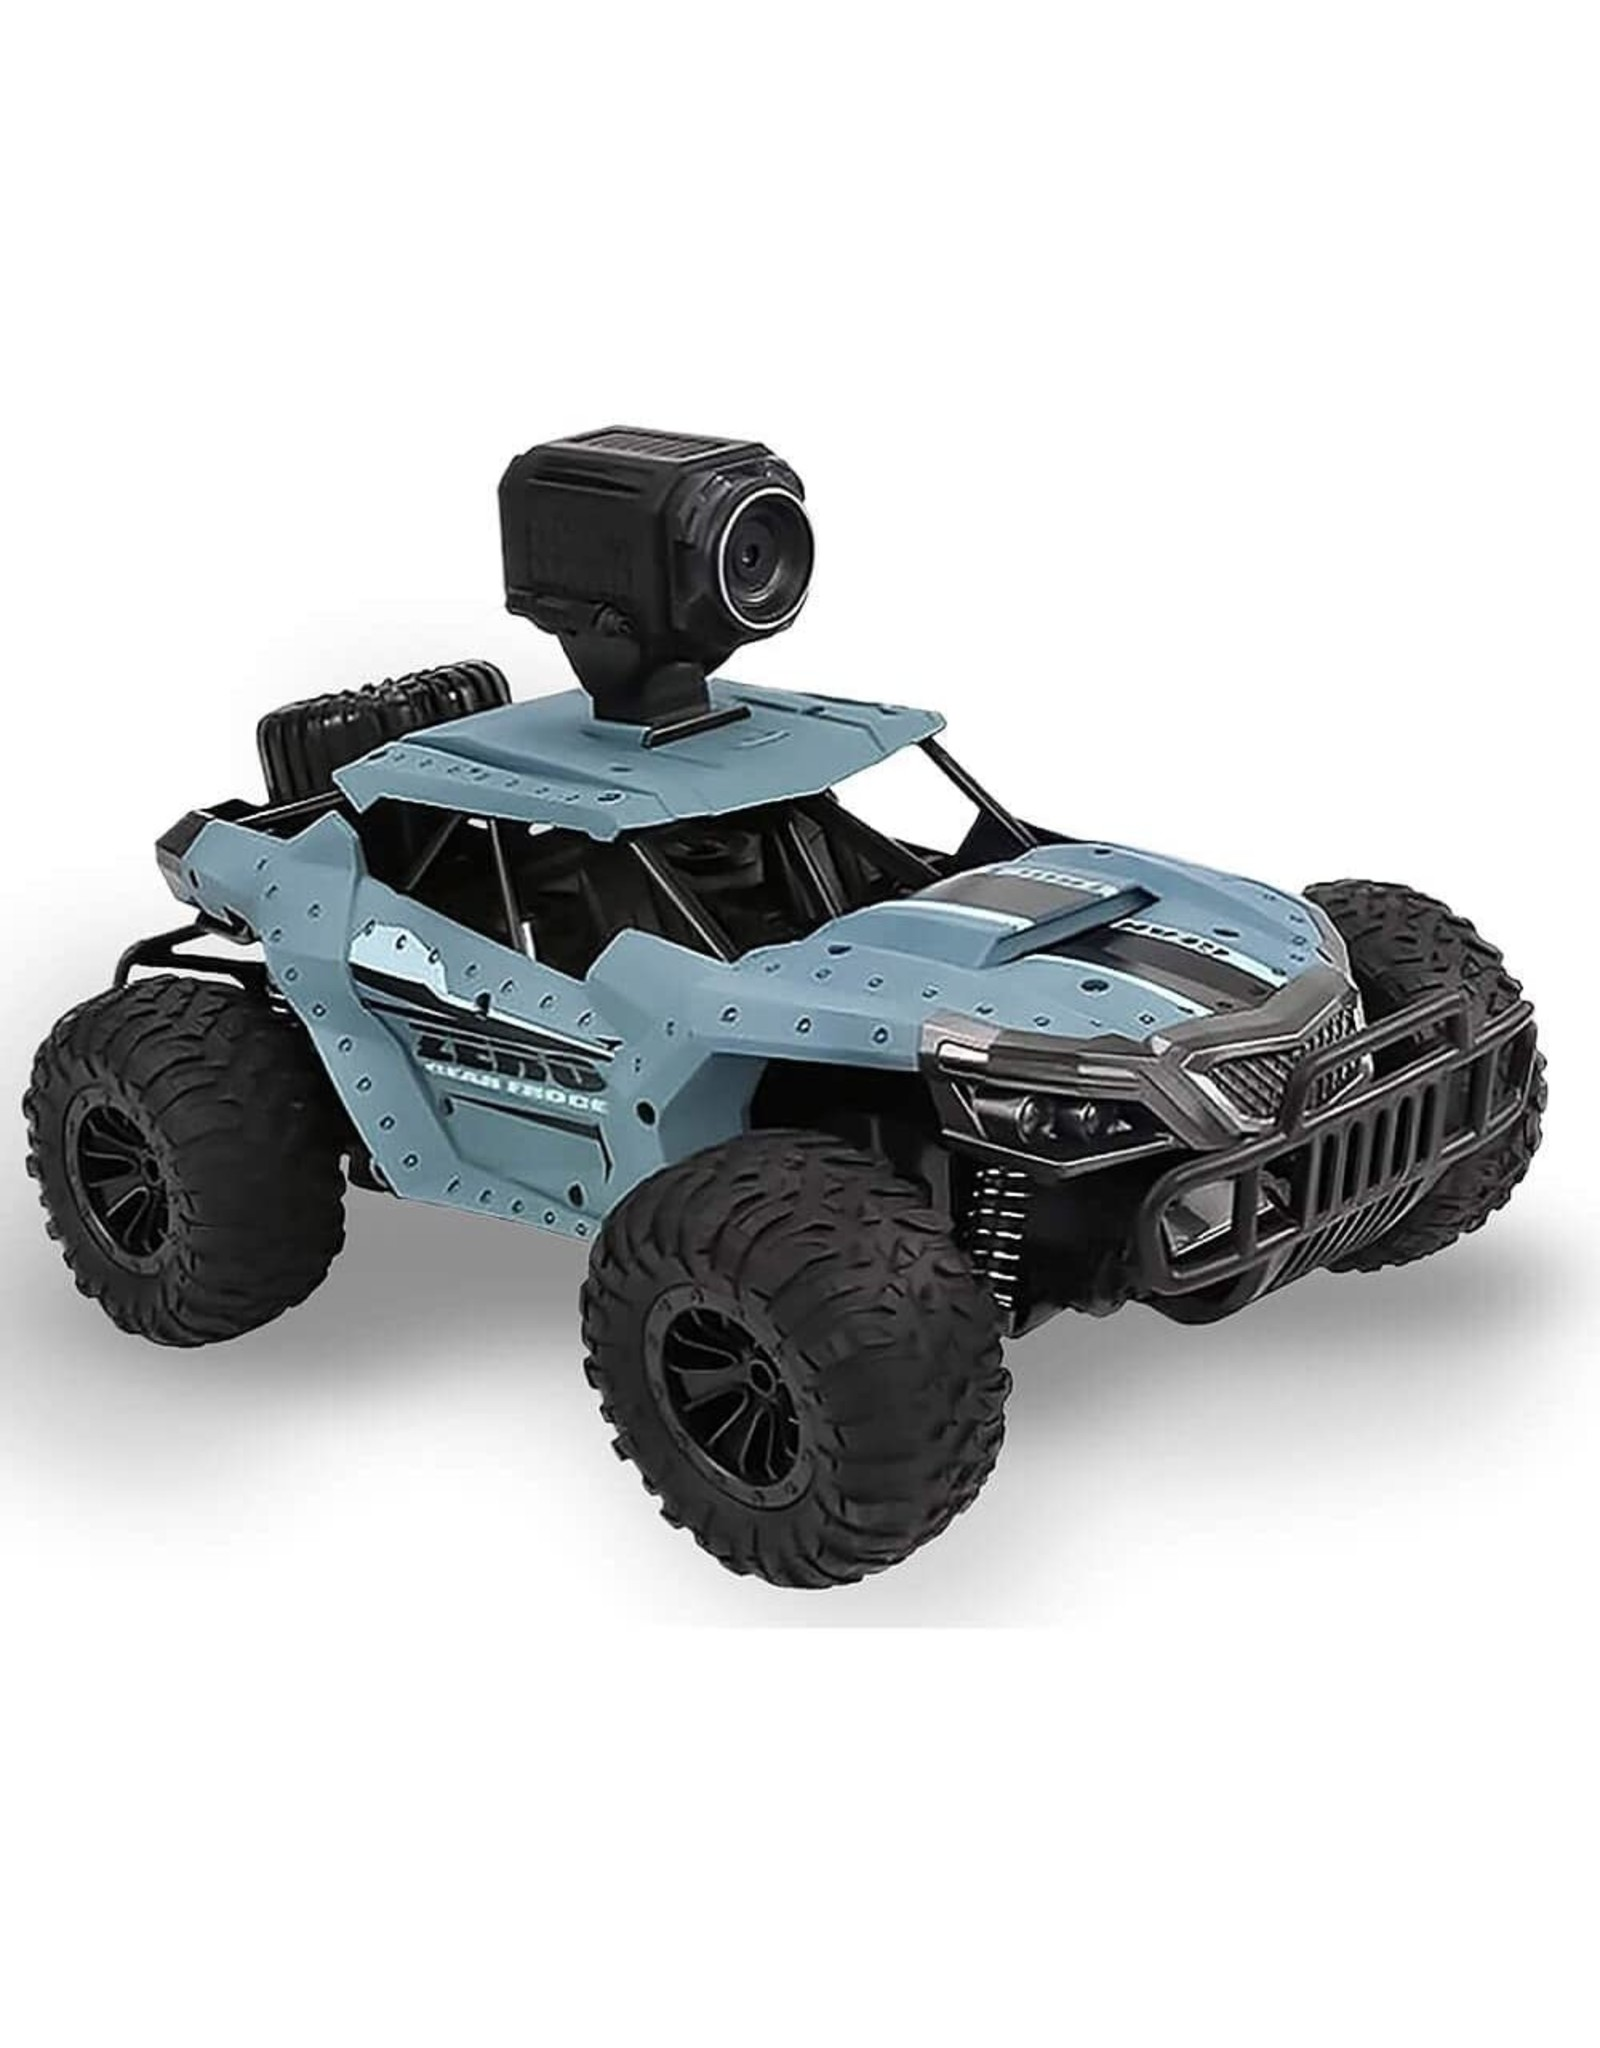 Spy Rover Mini